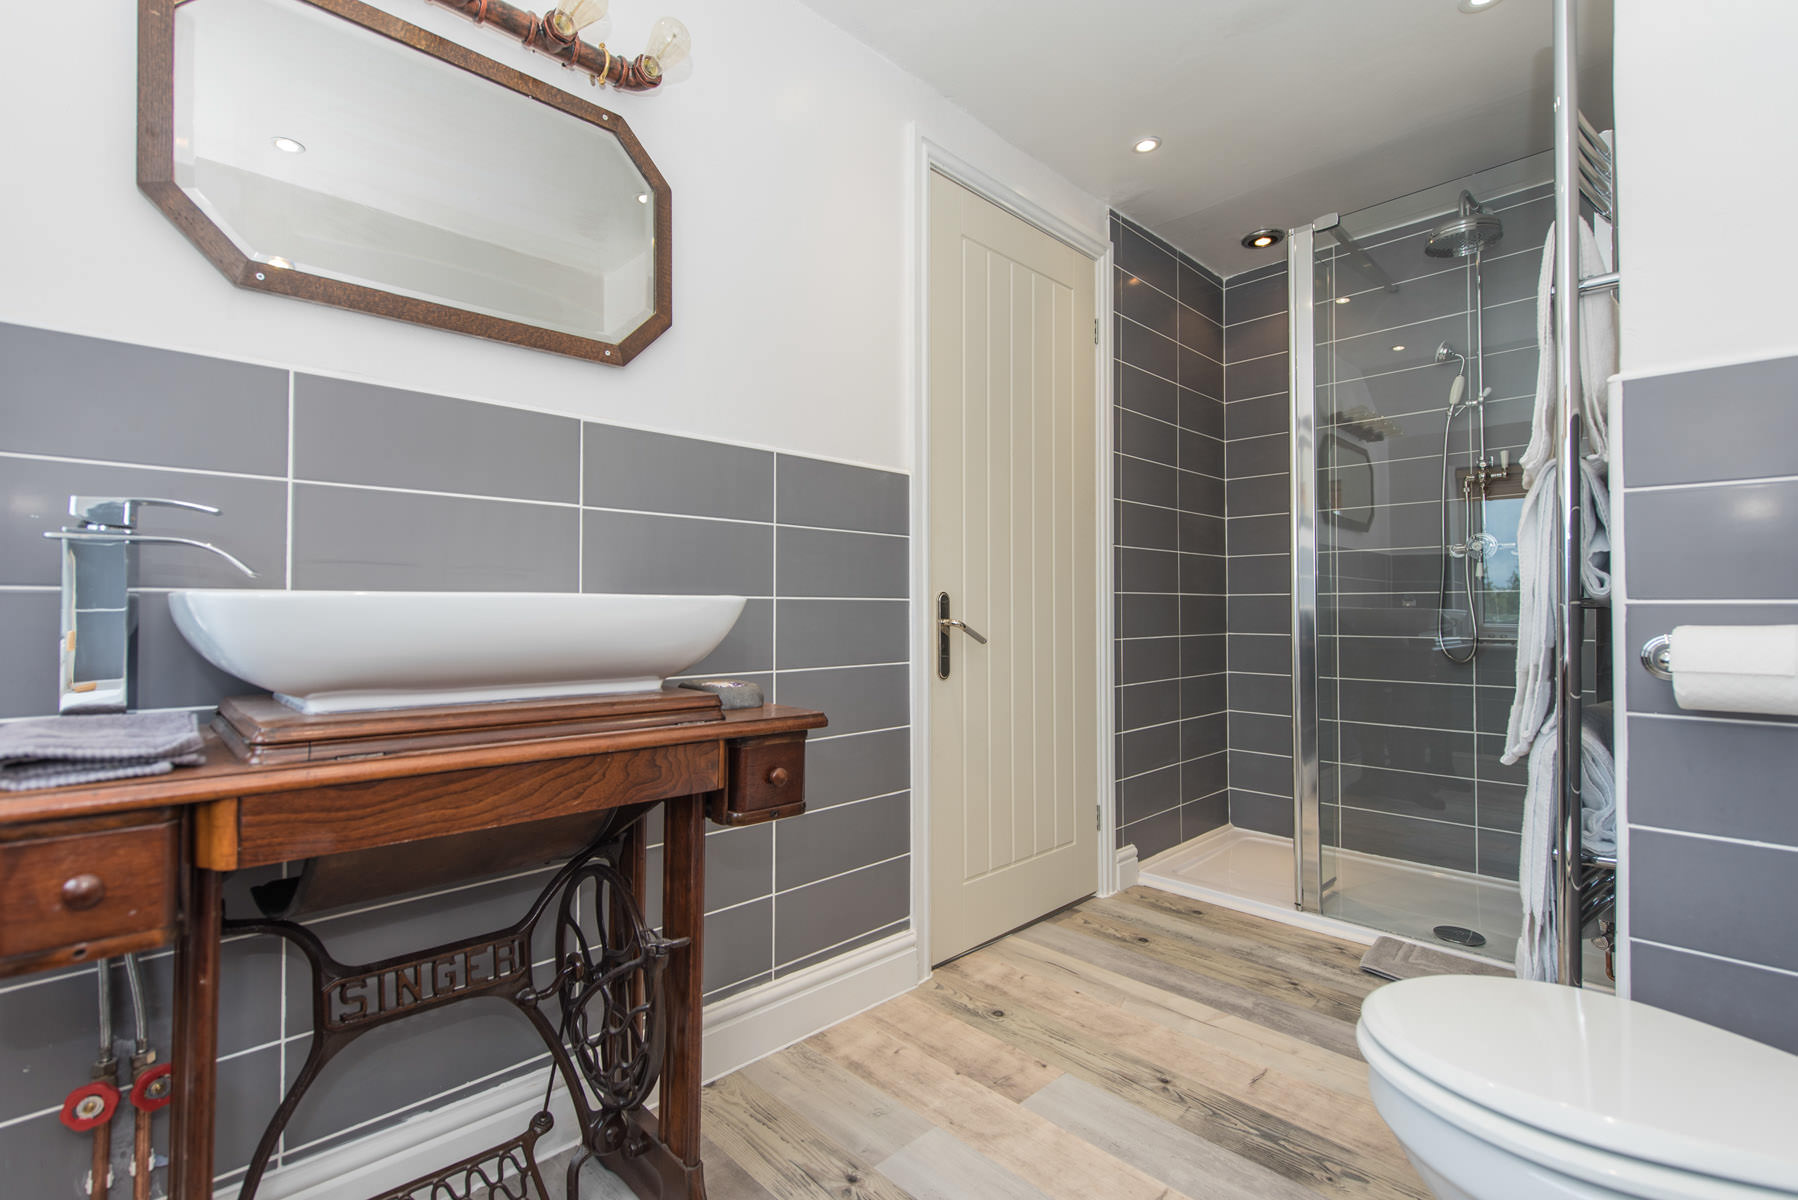 Cemaes Bay ensuite